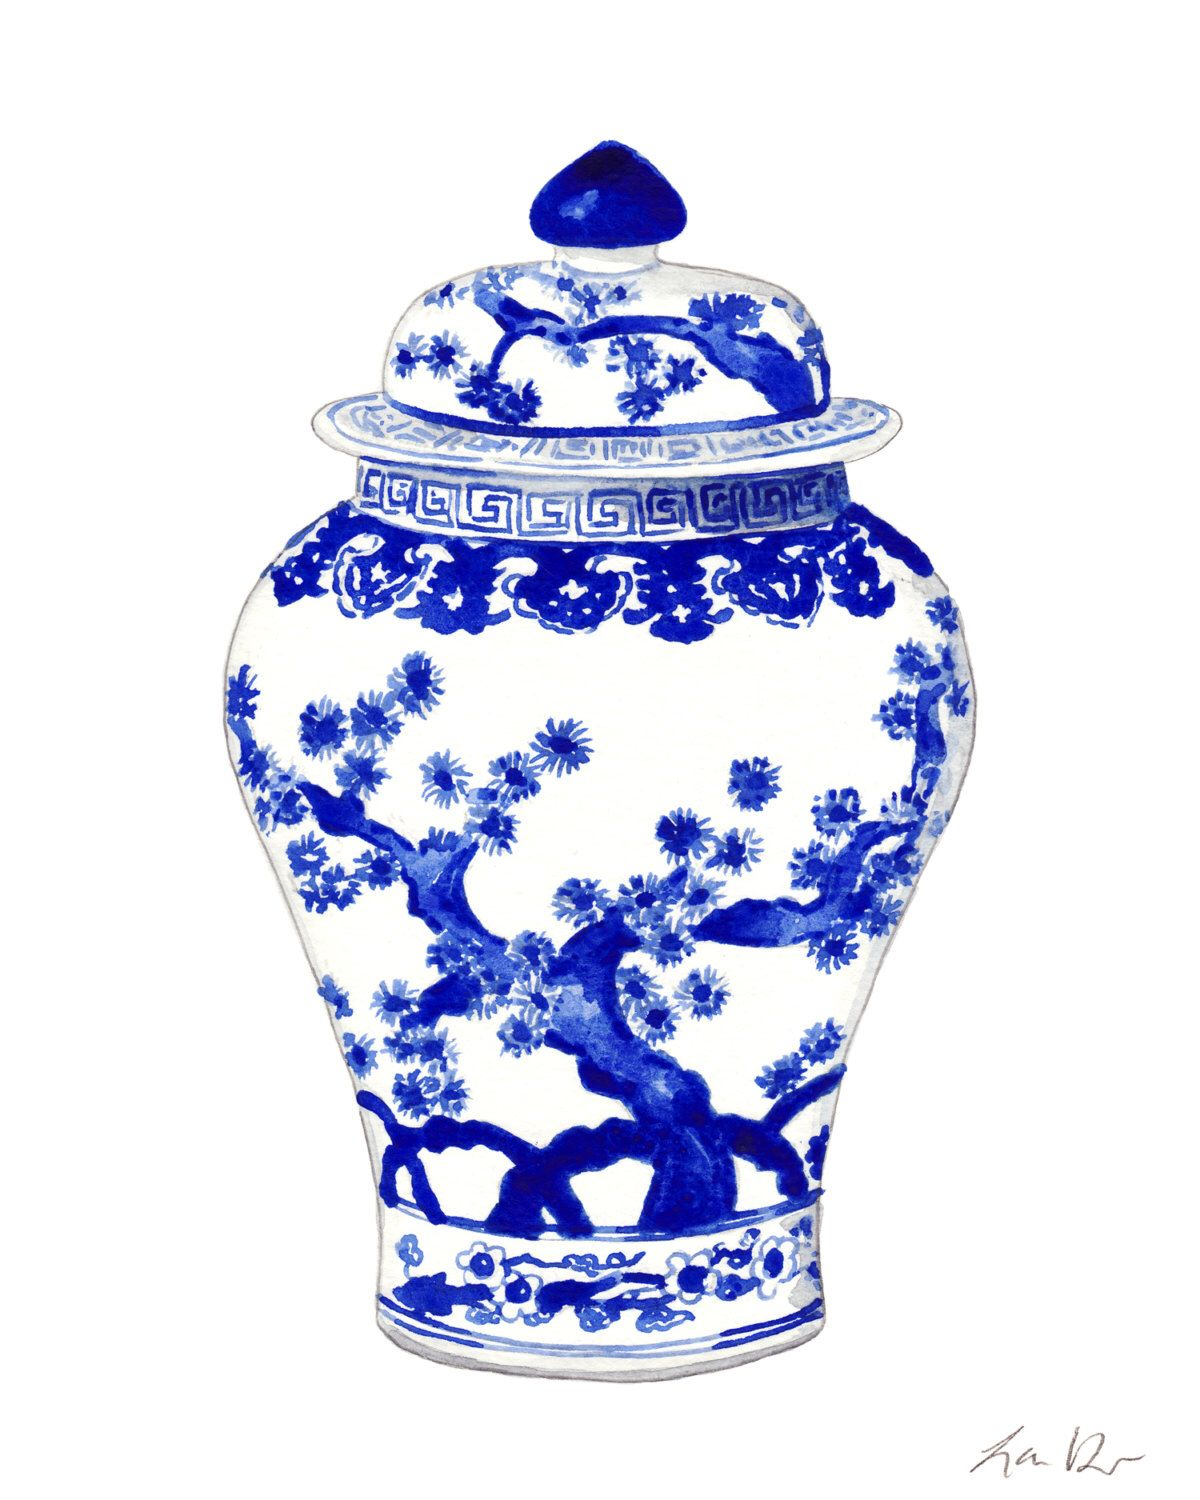 6cde6fbb4f35 Blue and White Ginger Jar Vase No. 10 - ORIGINAL Watercolor Painting - Home  Decor